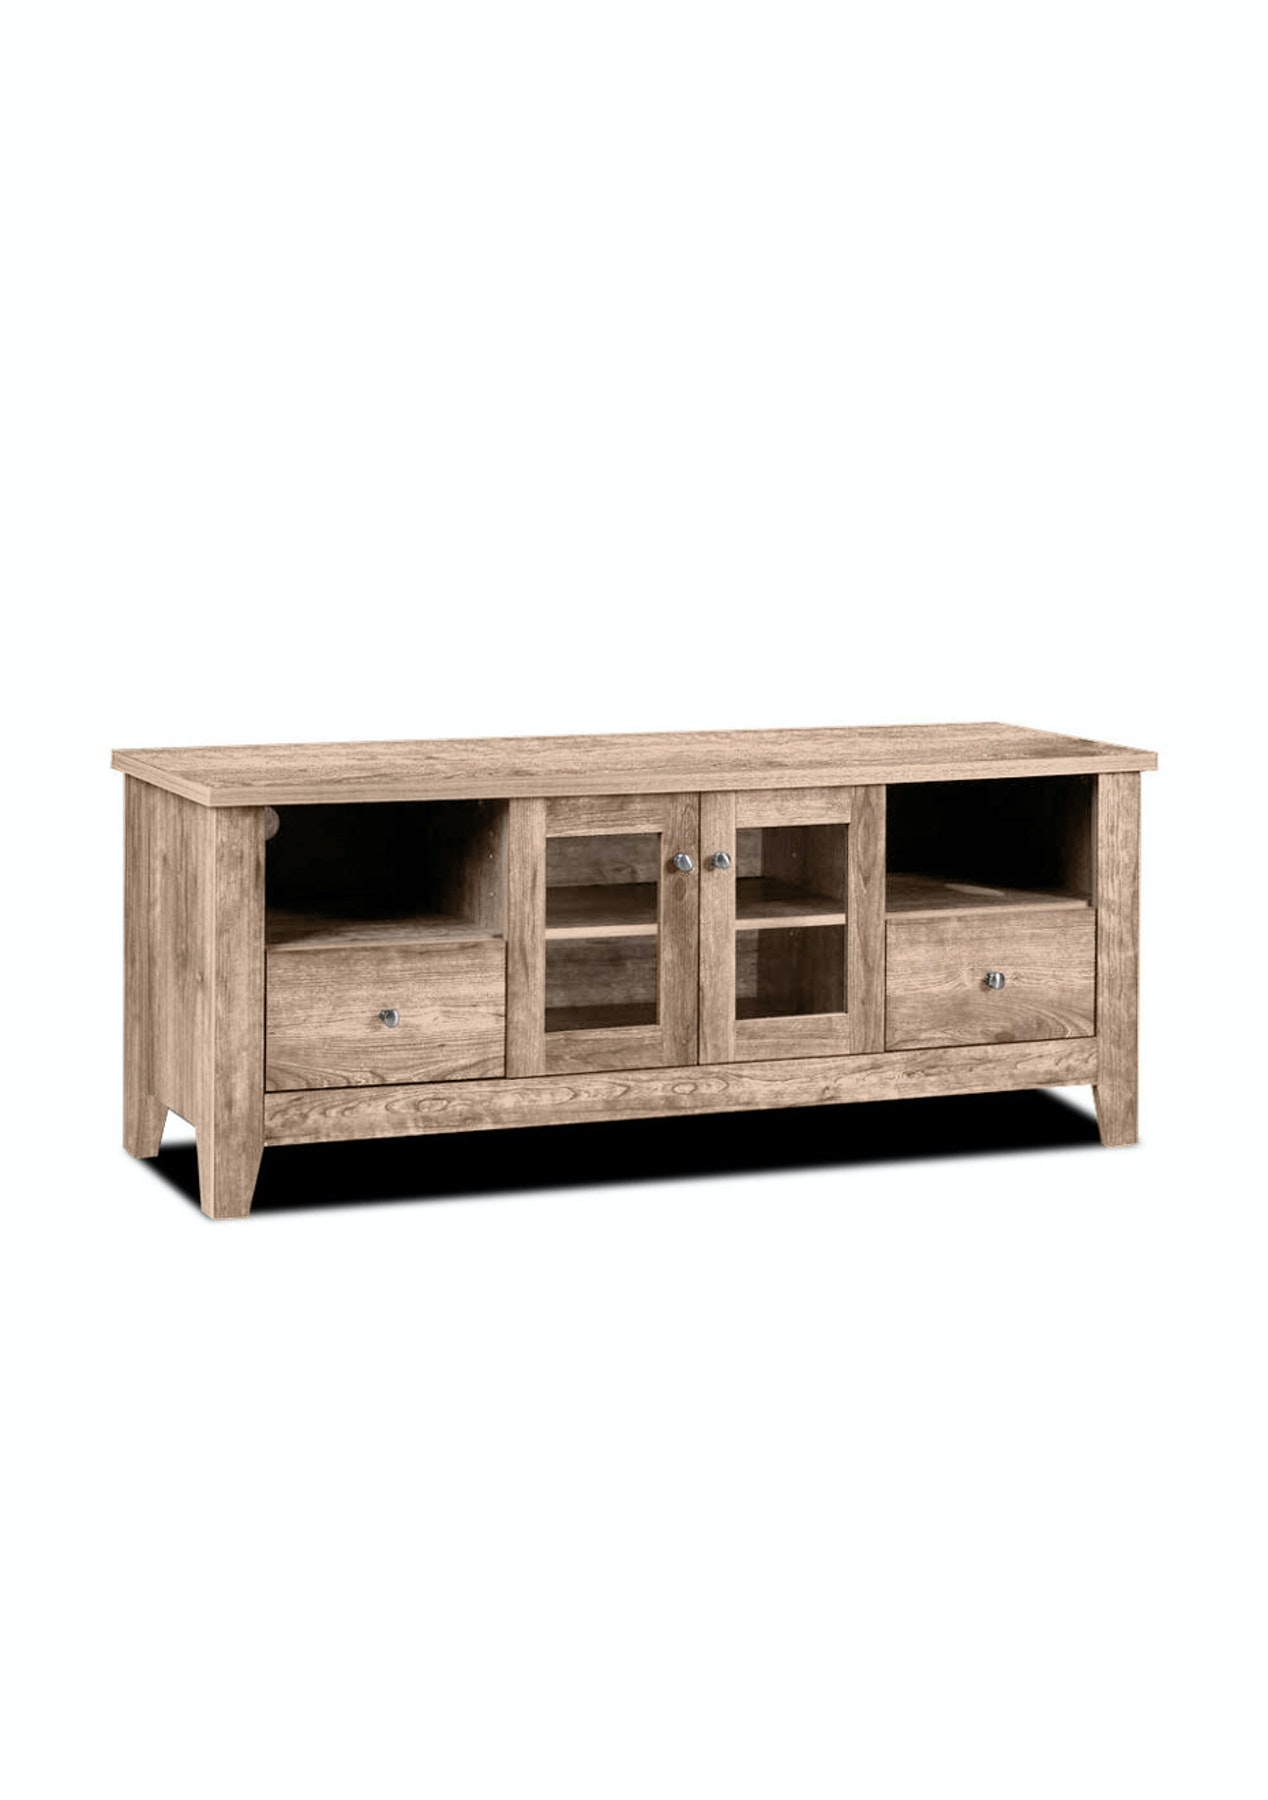 Greenville entertainment unit 150 natural oak new modern furniture pieces onceit